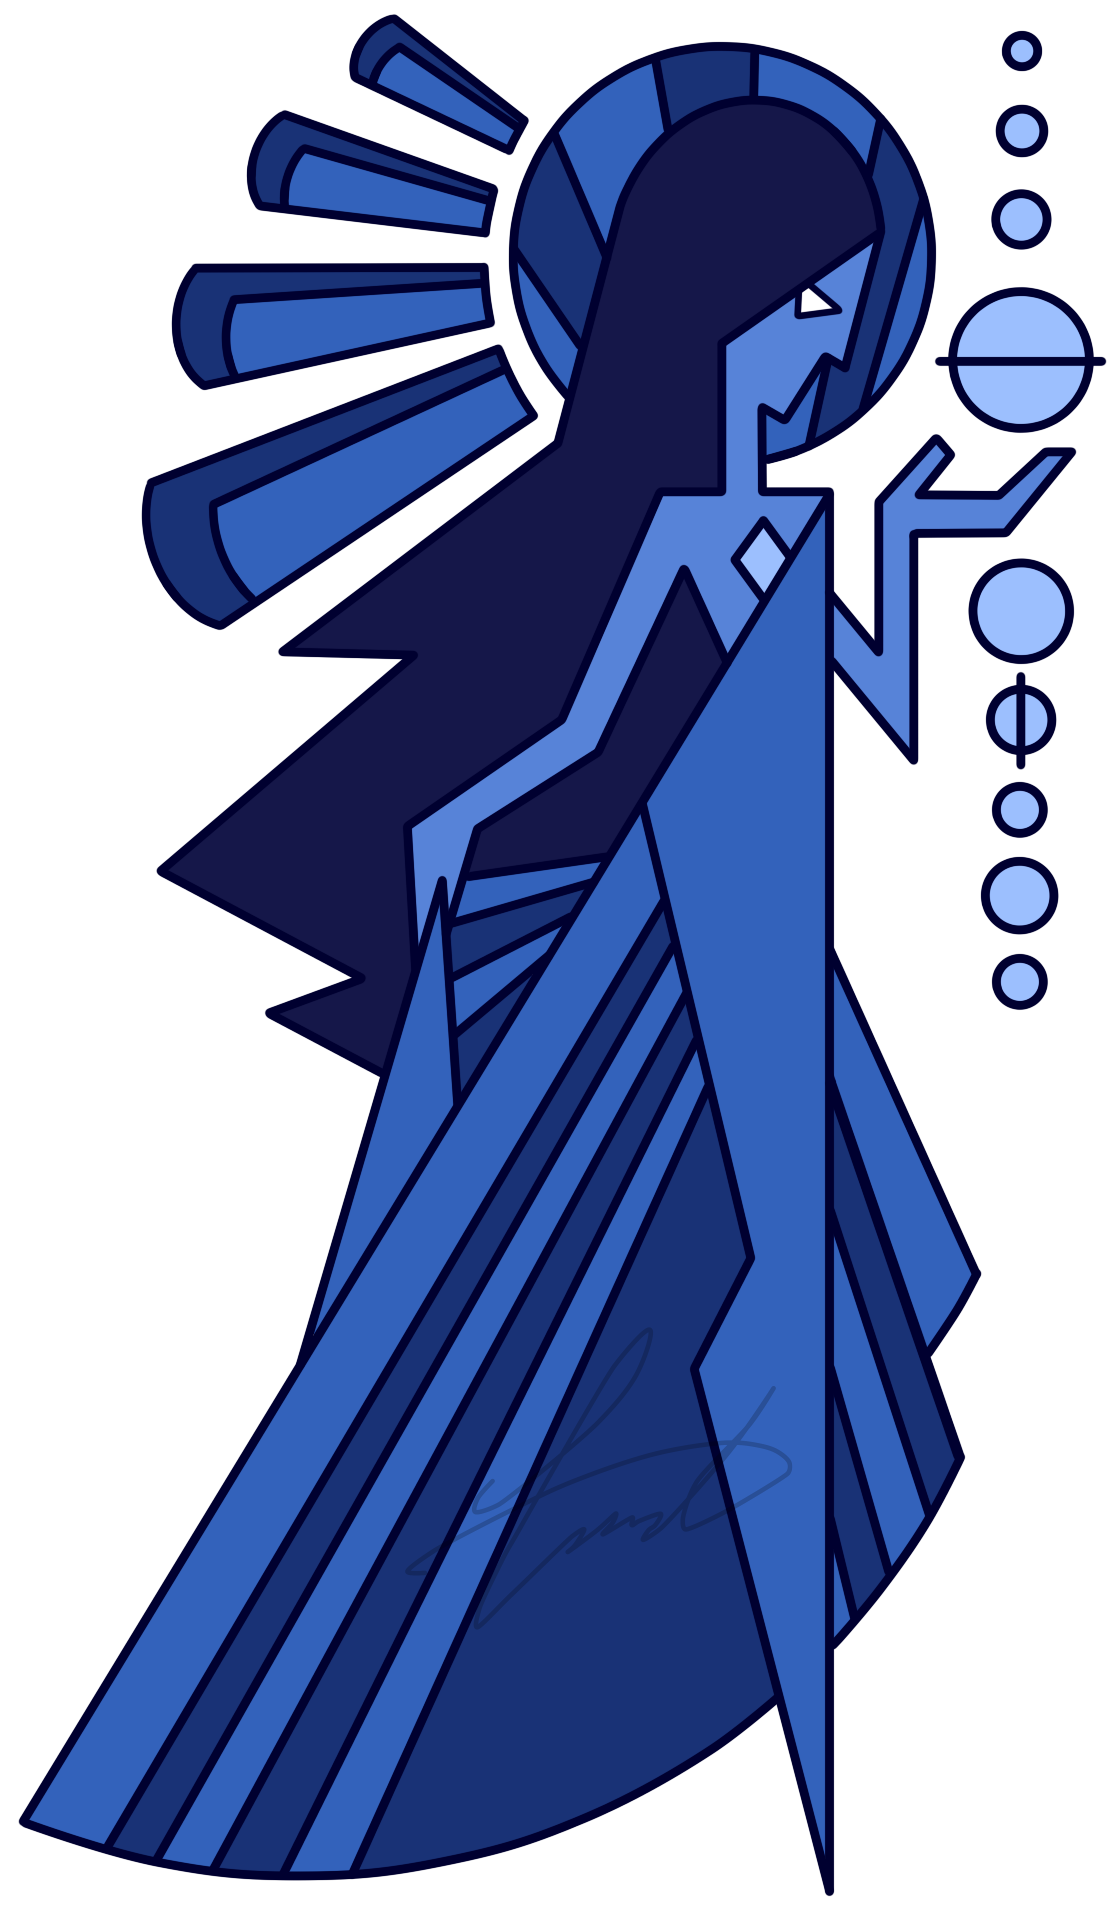 Blue diamond png. Image s mural by